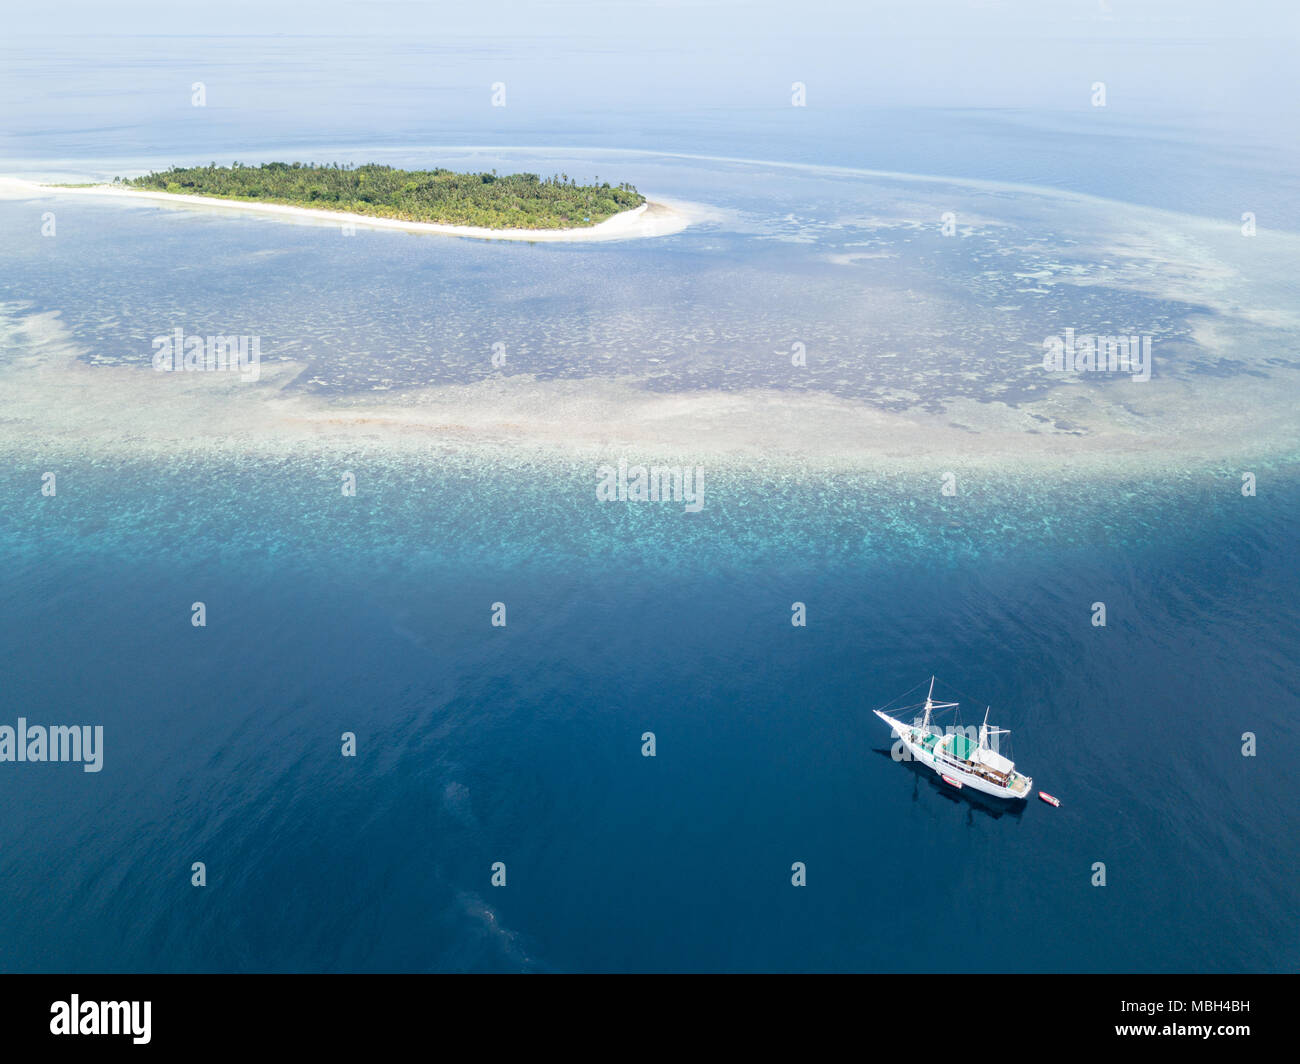 A Pinisi schooner drifts near a remote, tropical island in the Banda Sea. This region is in the Coral Triangle and has high marine biodiversity. - Stock Image